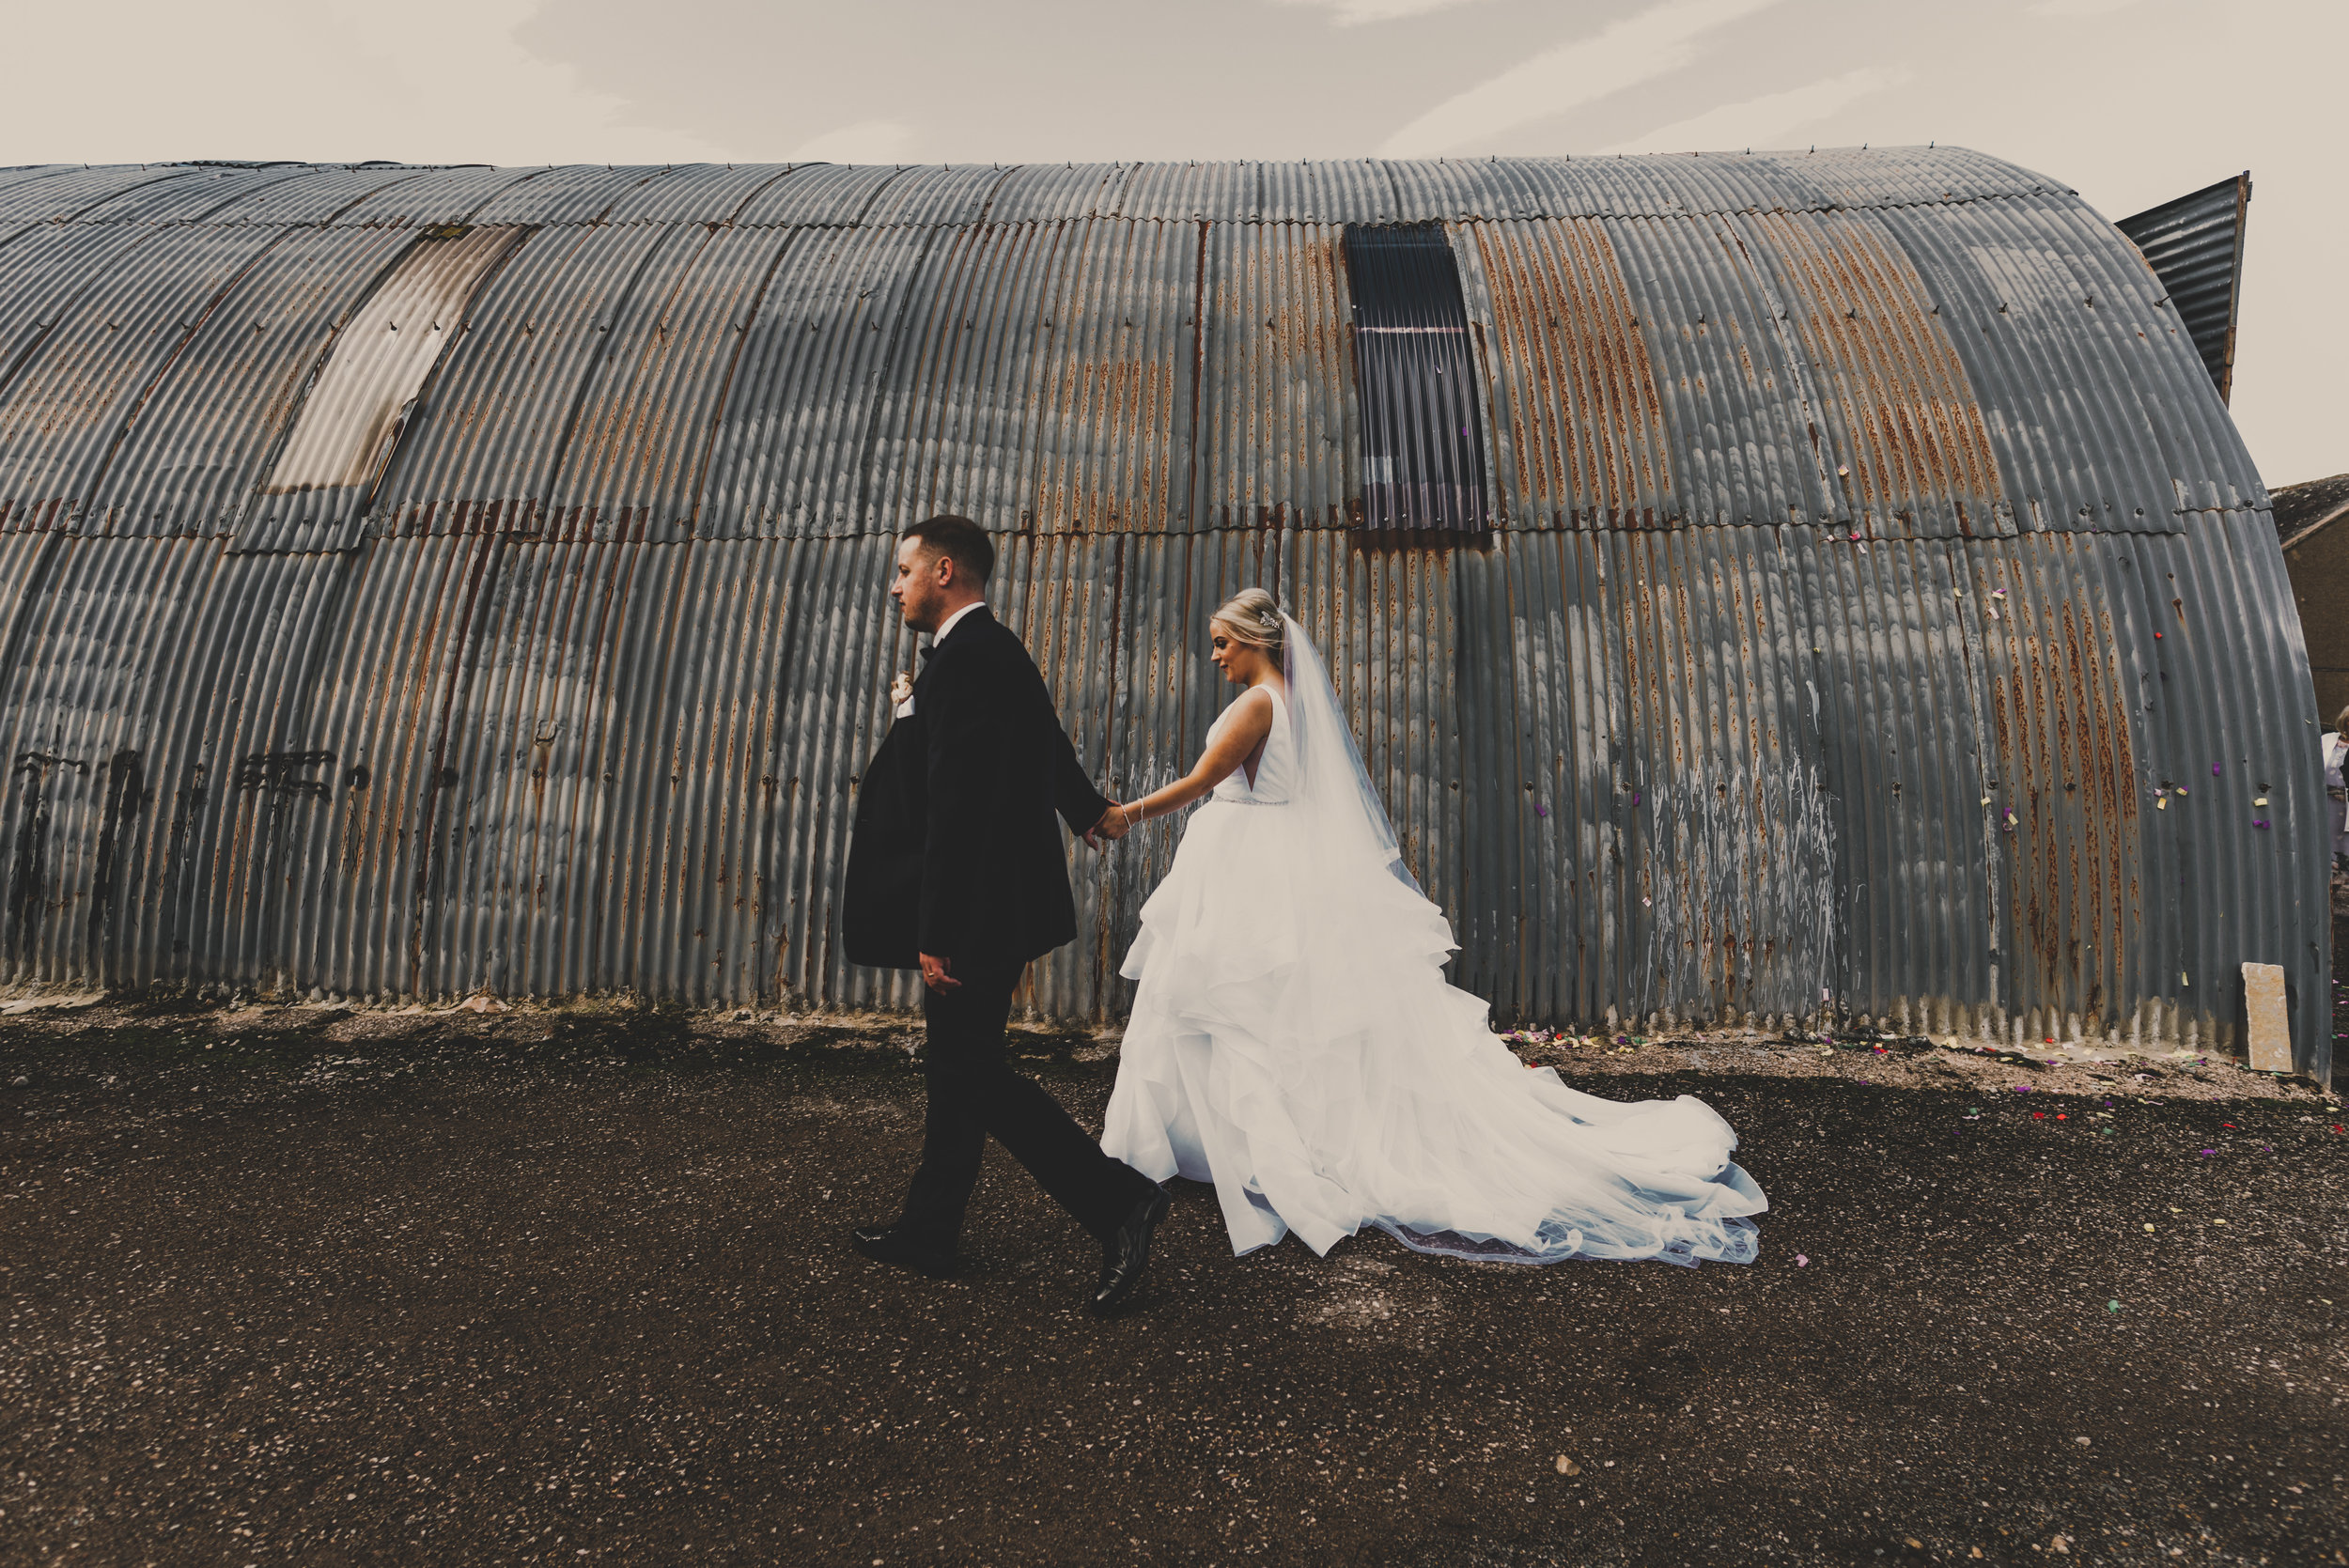 WEDDING: A glam wedding at Eden Wedding Barn Cumbria with an alternative twist.